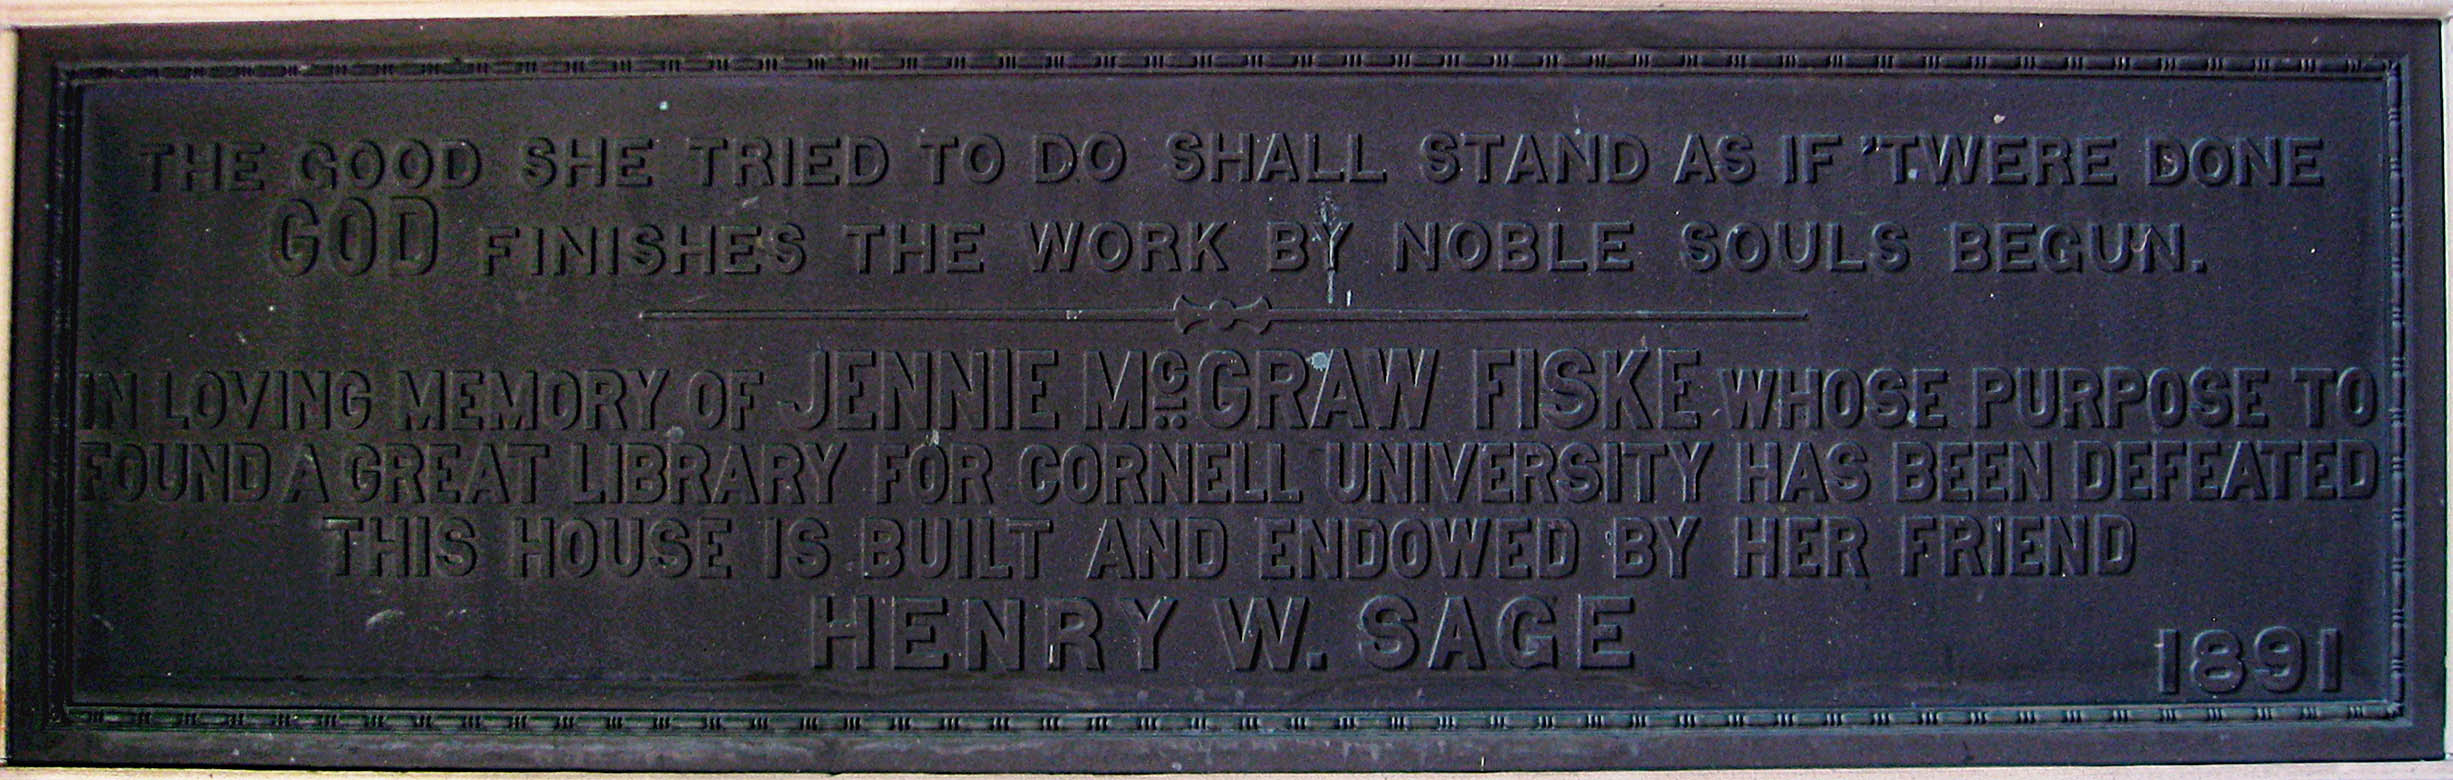 hospital dedication plaque example